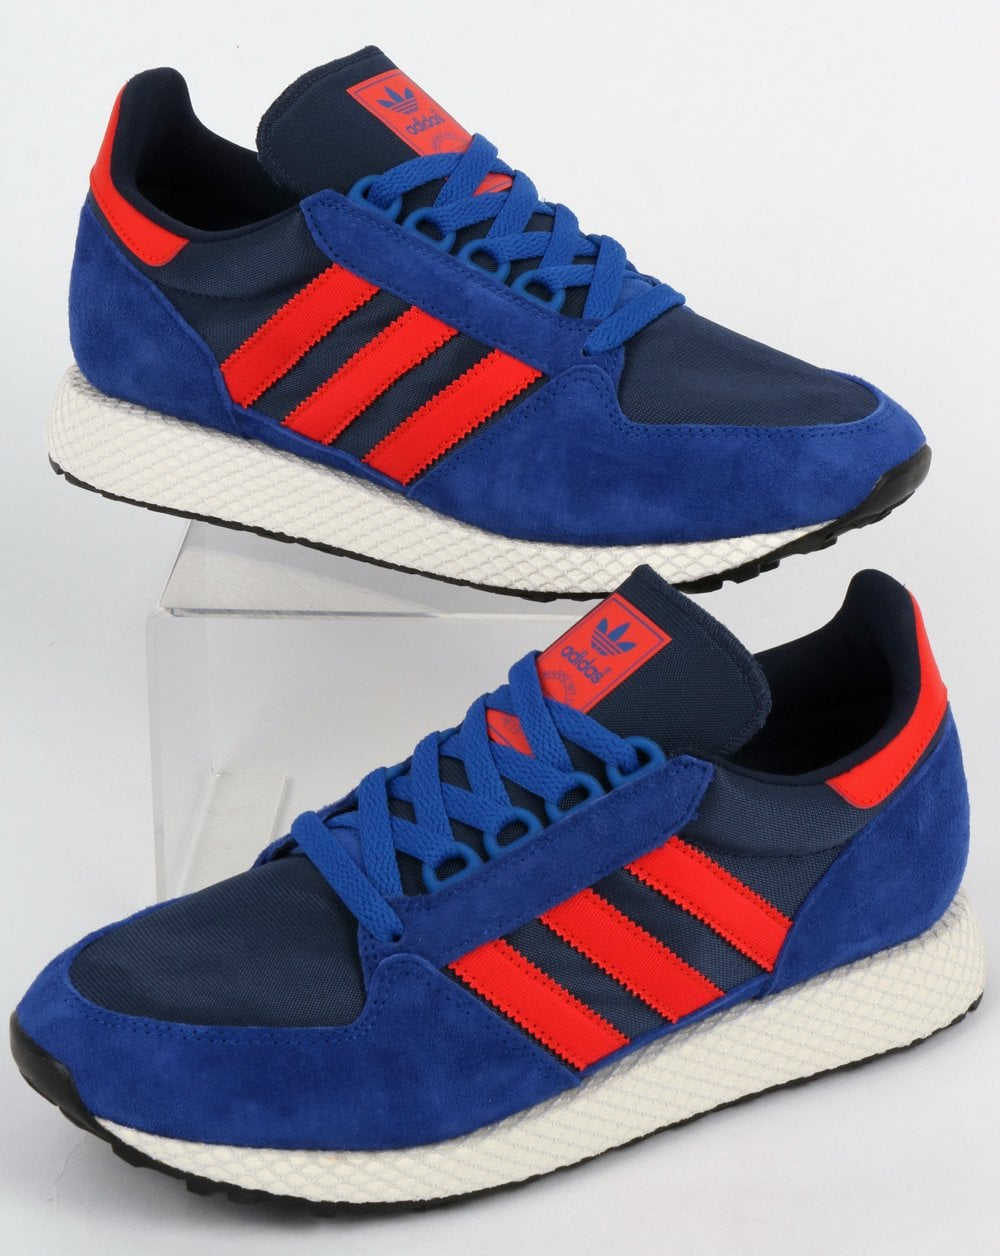 cheap for discount 4e0d3 05889 adidas Trainers Adidas Forest Grove Trainers Power BlueRed